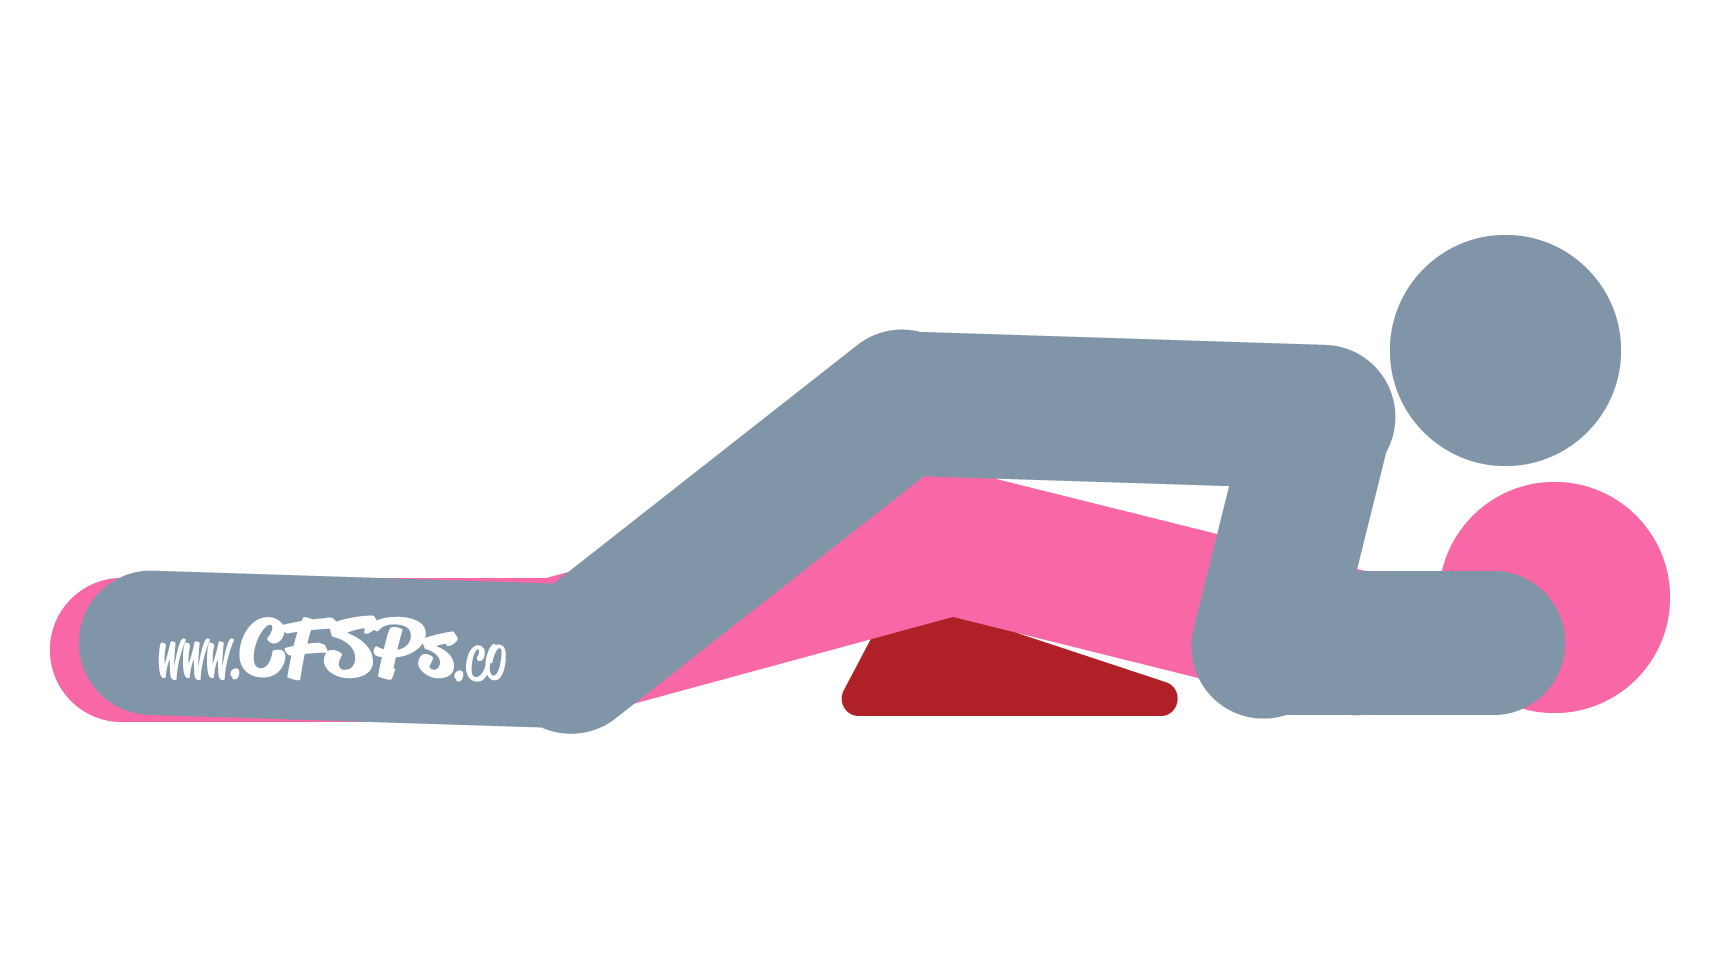 Flatiron: Man-On-Top, Rear-Entry Sex Position Illustration Using a Sex Pillow